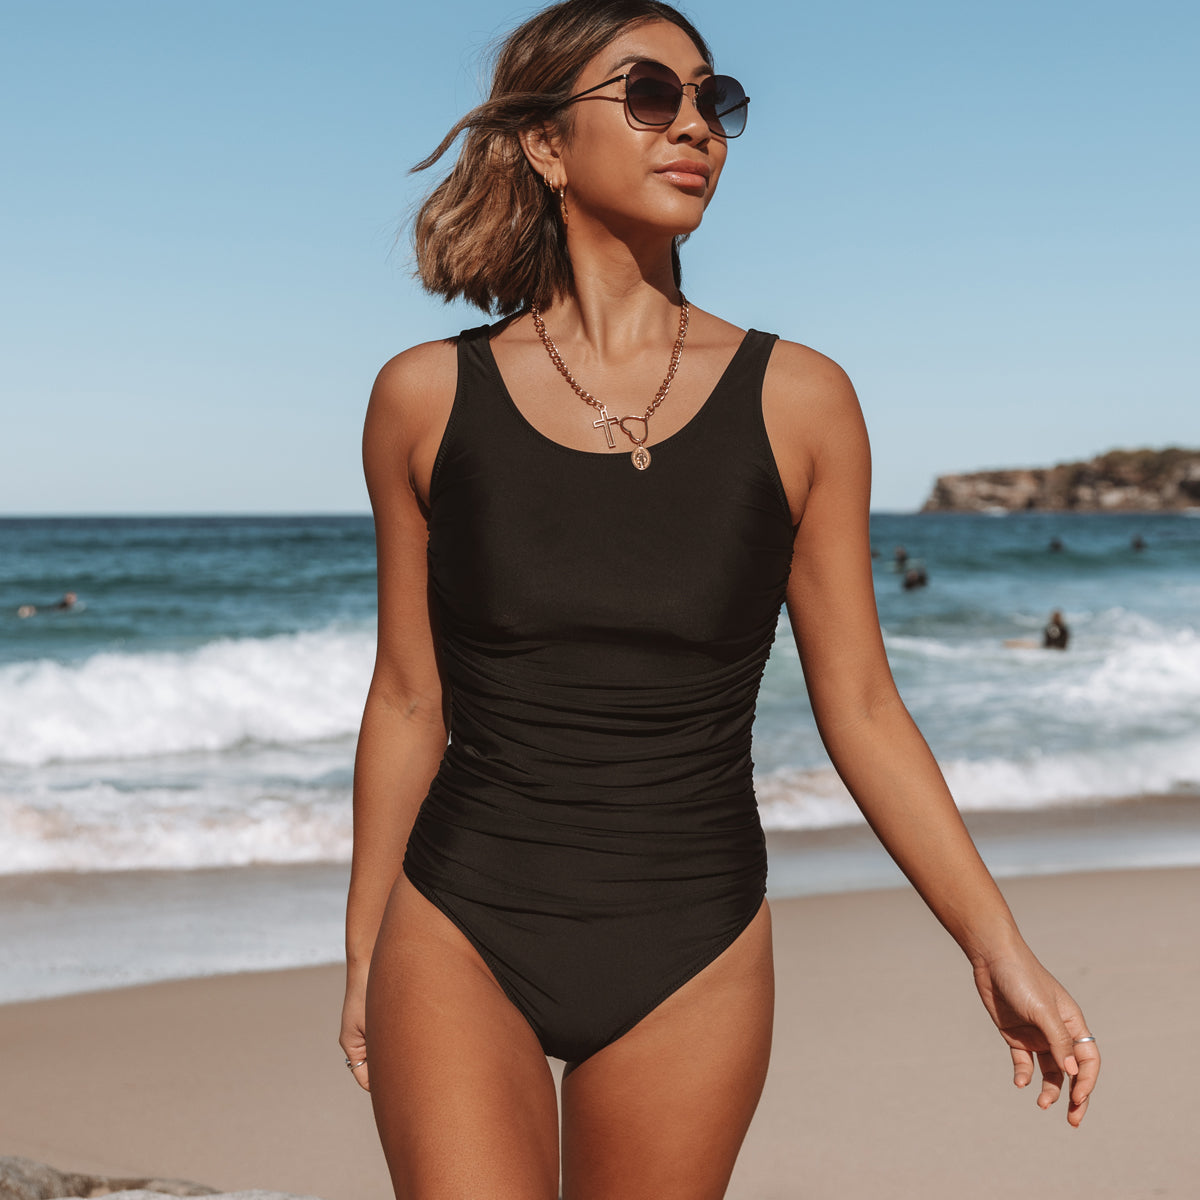 Ruched Design Solid Black One Piece Swimsuit